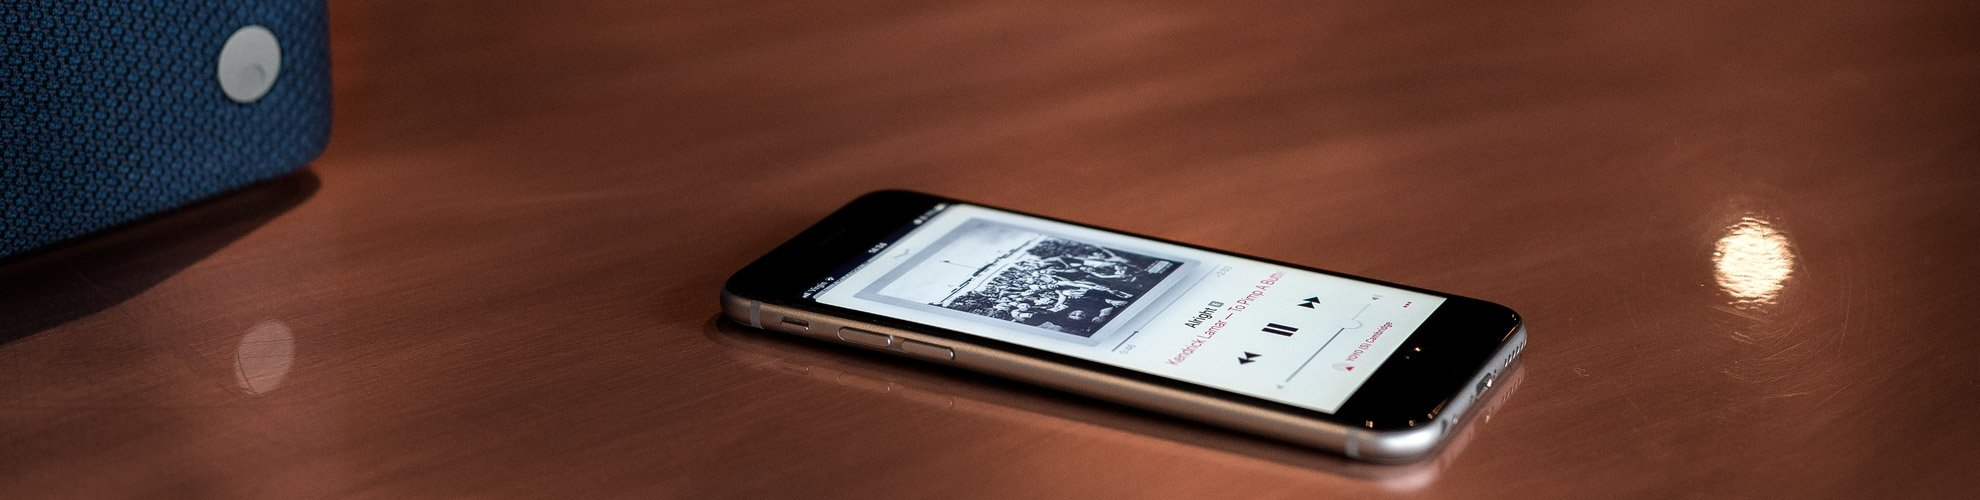 10 Apple Music Tips and Tricks you Might Not Know About